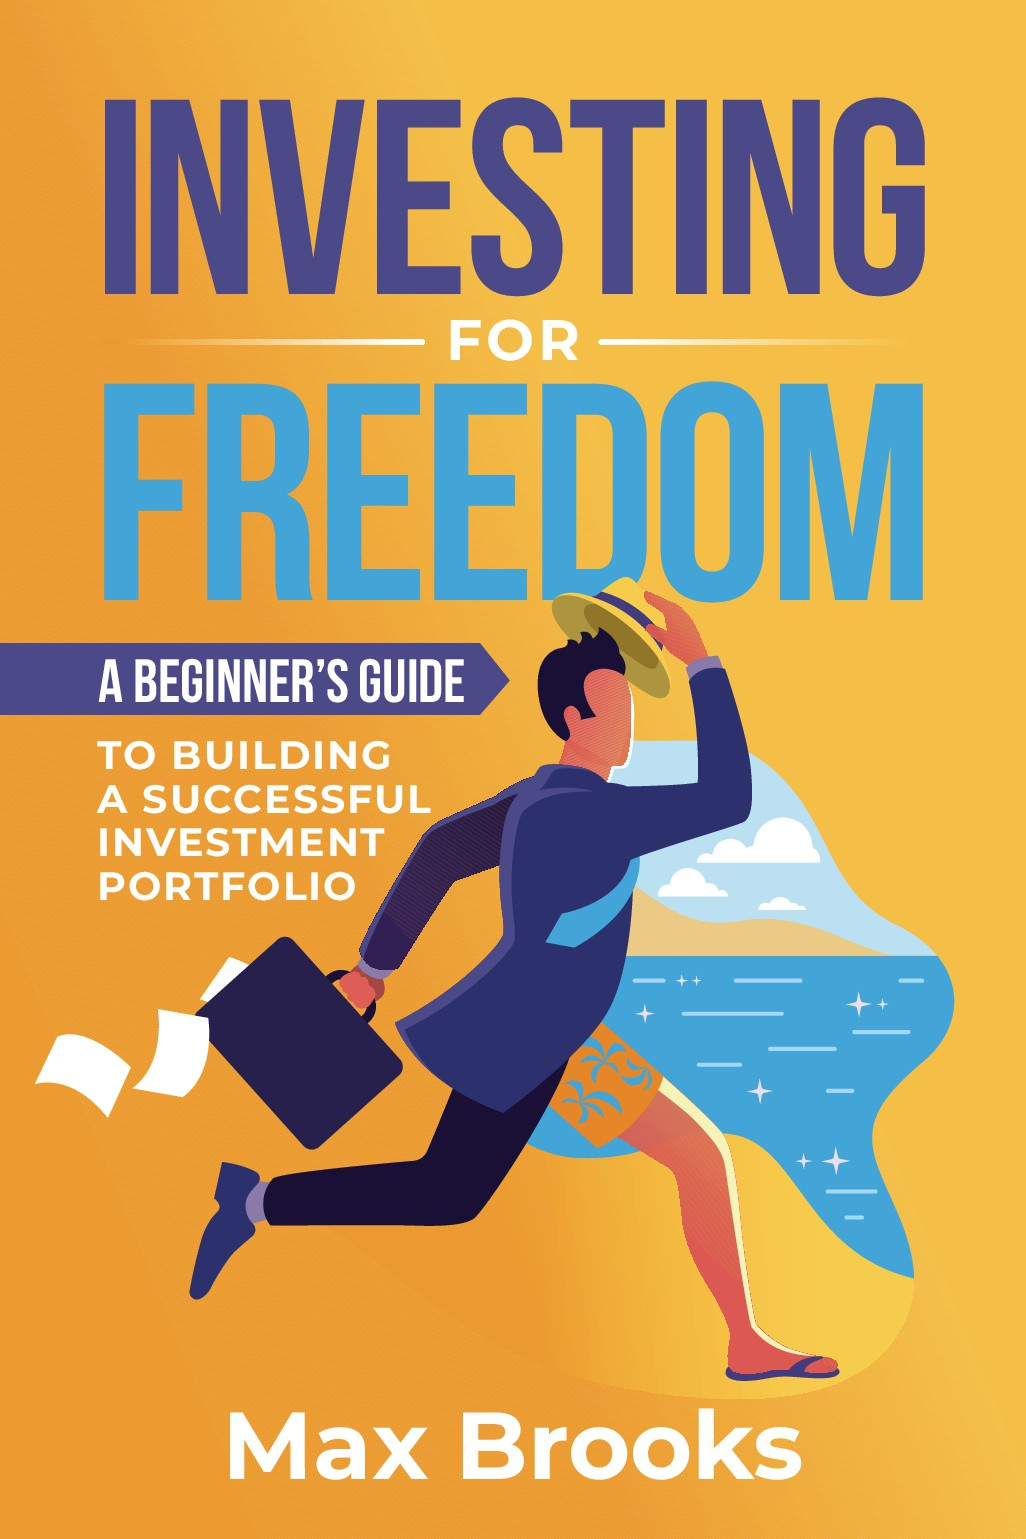 We need a stimulating, thought-provoking cover for an eBook on financial freedom & lifestyle design!